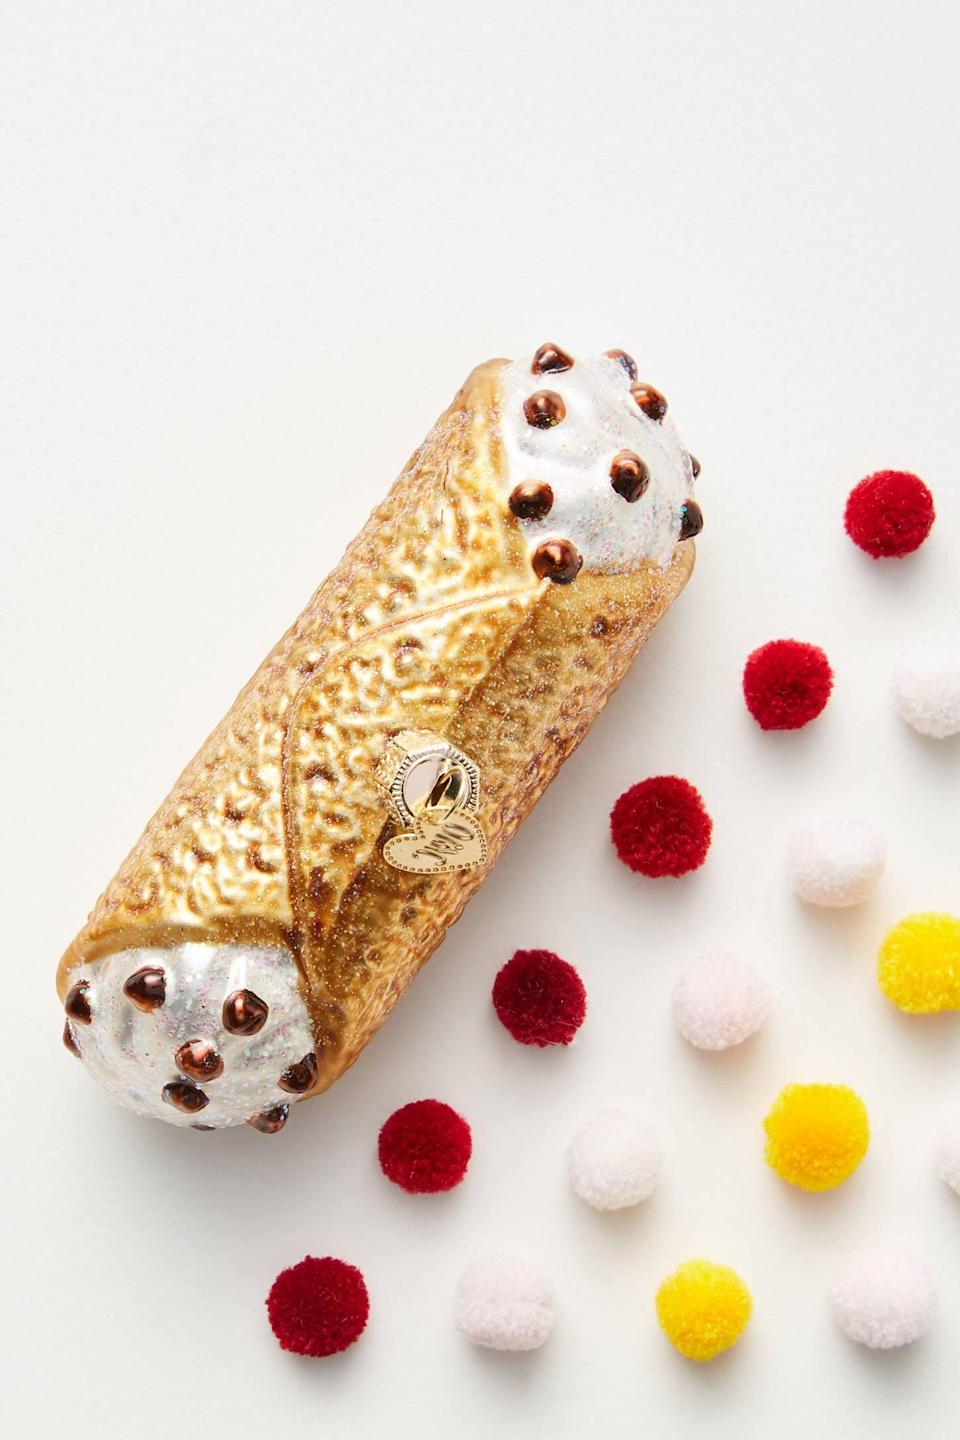 """<p>All we can say is YUM! The <a href=""""https://www.popsugar.com/buy/Cannoli-Ornament-490514?p_name=Cannoli%20Ornament&retailer=anthropologie.com&pid=490514&price=16&evar1=casa%3Aus&evar9=46615300&evar98=https%3A%2F%2Fwww.popsugar.com%2Fhome%2Fphoto-gallery%2F46615300%2Fimage%2F46615384%2FCannoli-Ornament&list1=shopping%2Canthropologie%2Choliday%2Cchristmas%2Cchristmas%20decorations%2Choliday%20decor%2Chome%20shopping&prop13=mobile&pdata=1"""" rel=""""nofollow noopener"""" class=""""link rapid-noclick-resp"""" target=""""_blank"""" data-ylk=""""slk:Cannoli Ornament"""">Cannoli Ornament</a> ($16) is a perfect treat for you and your tree. </p>"""